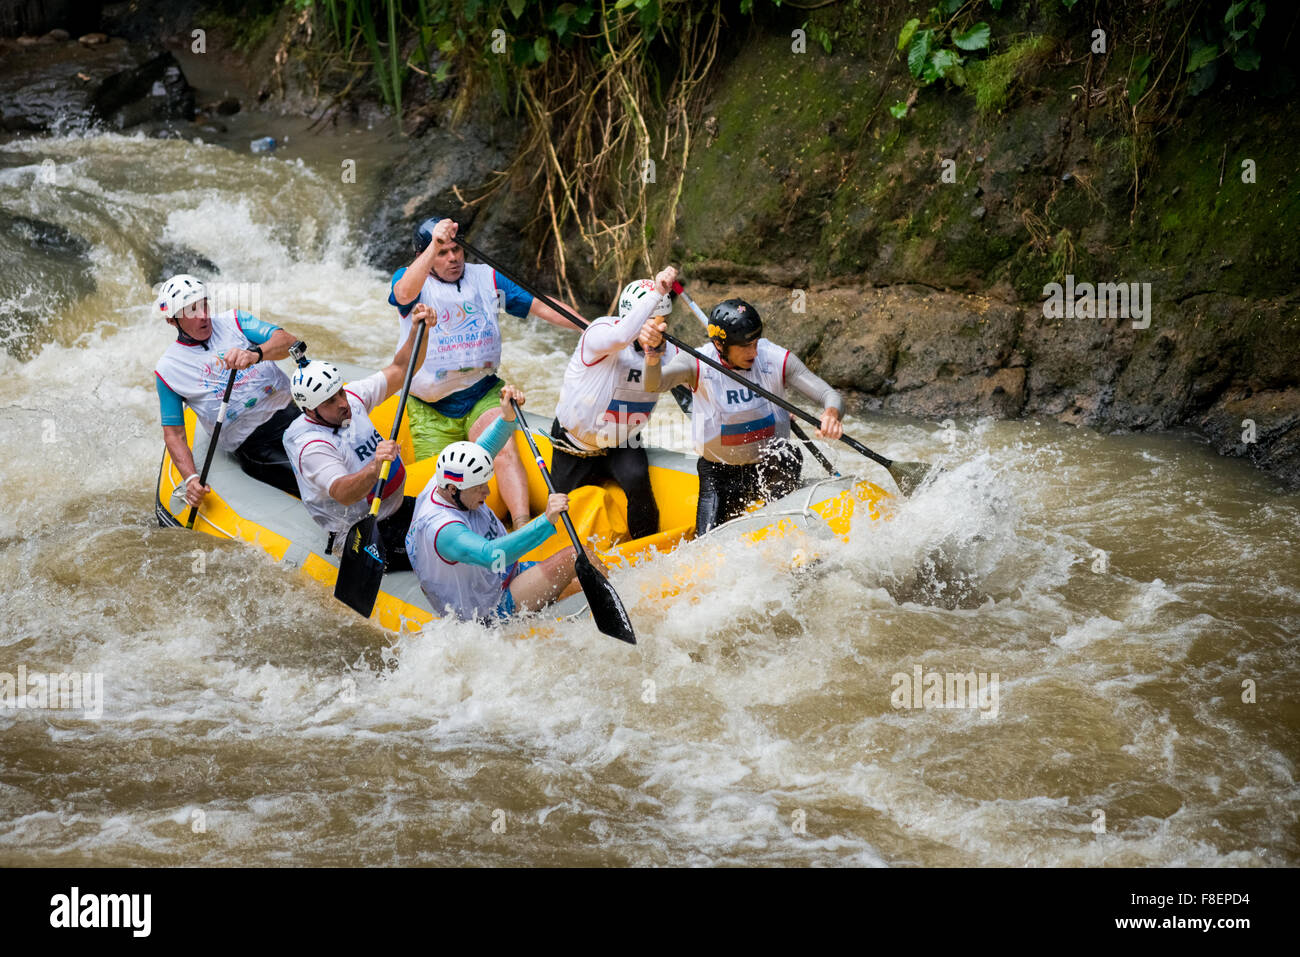 Russian master men's team during sprint race category on 2015 World Rafting Championship. - Stock Image